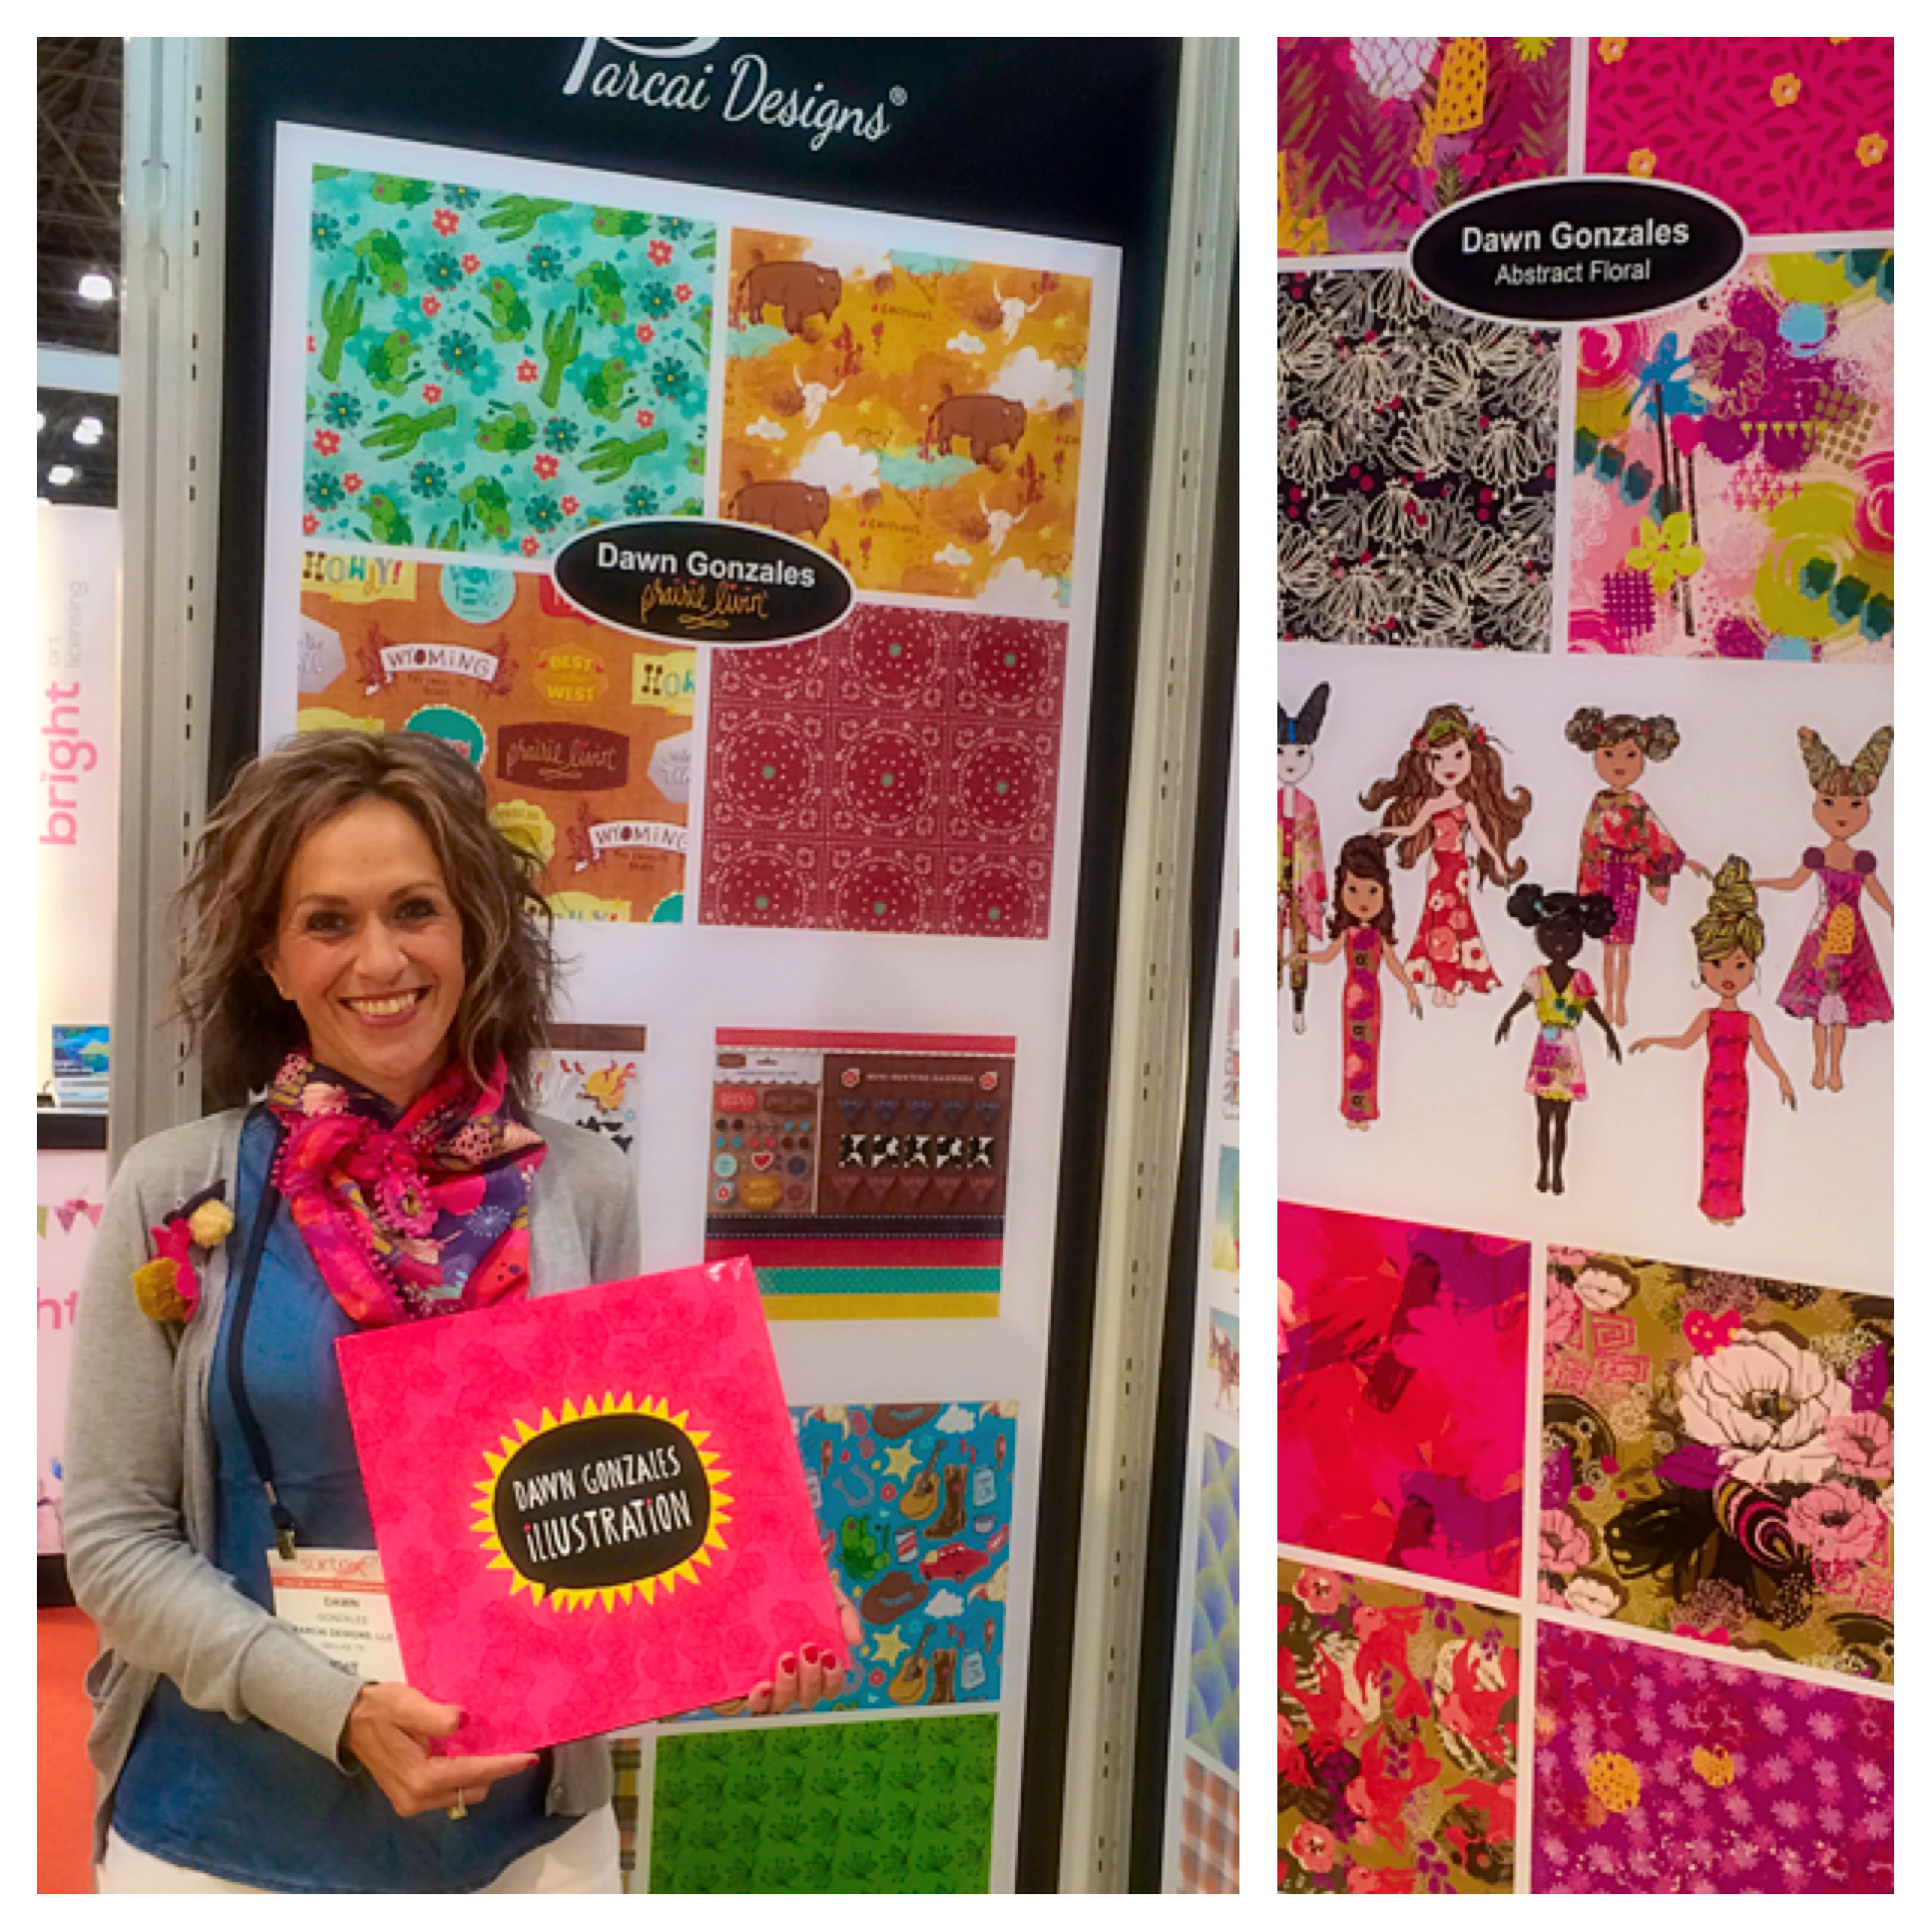 Me at the Parcai Designs Booth Exhibit, Surtex, May 2016